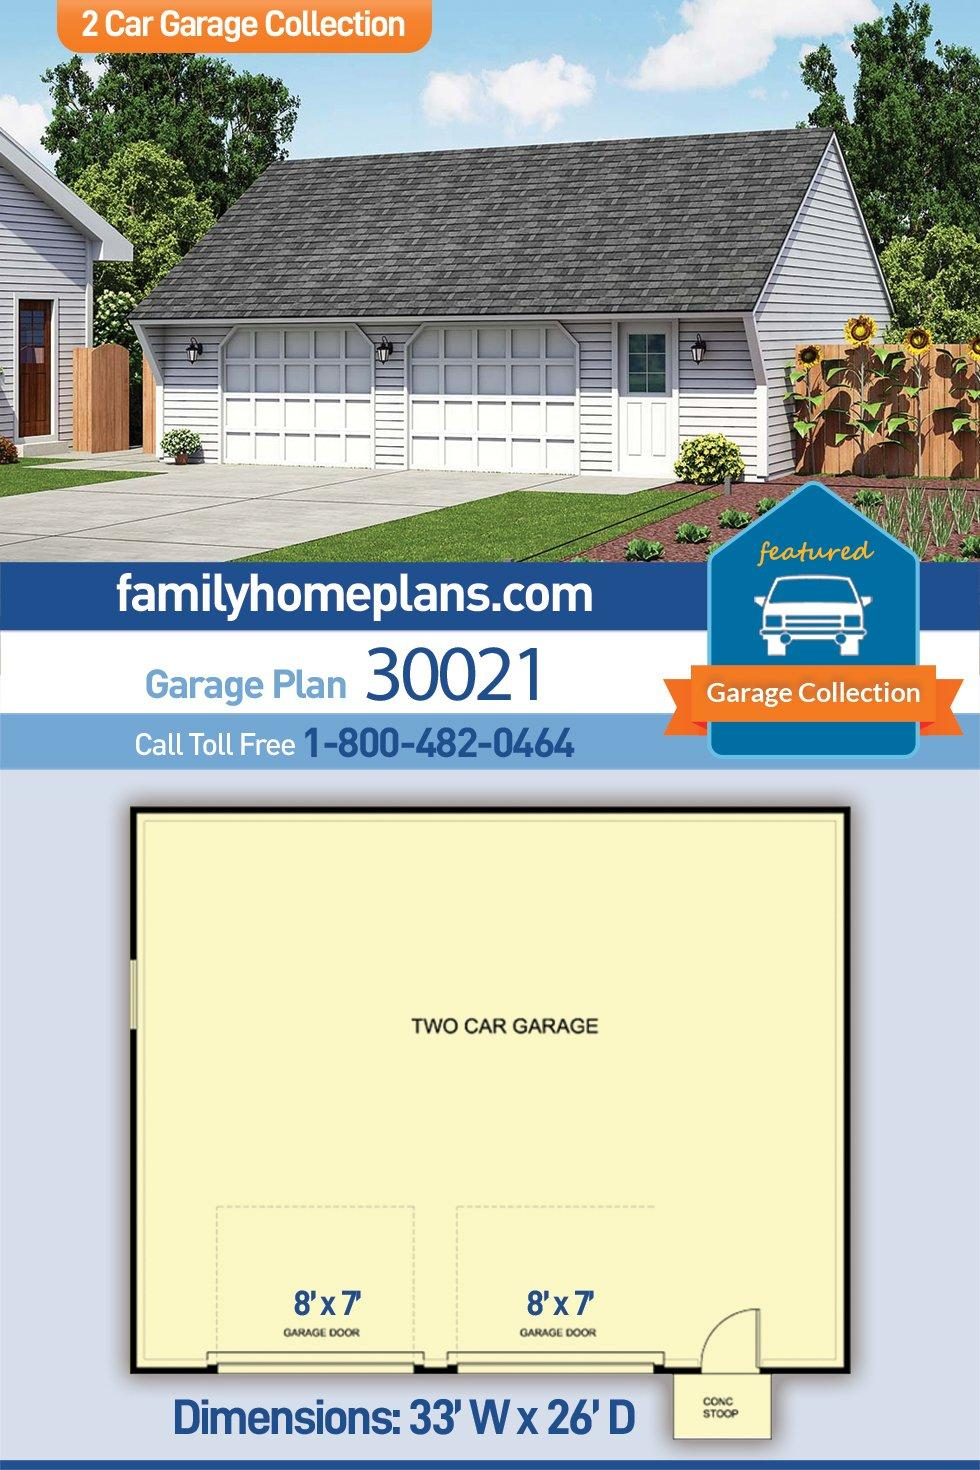 Cape Cod, Saltbox, Traditional 2 Car Garage Plan 30021